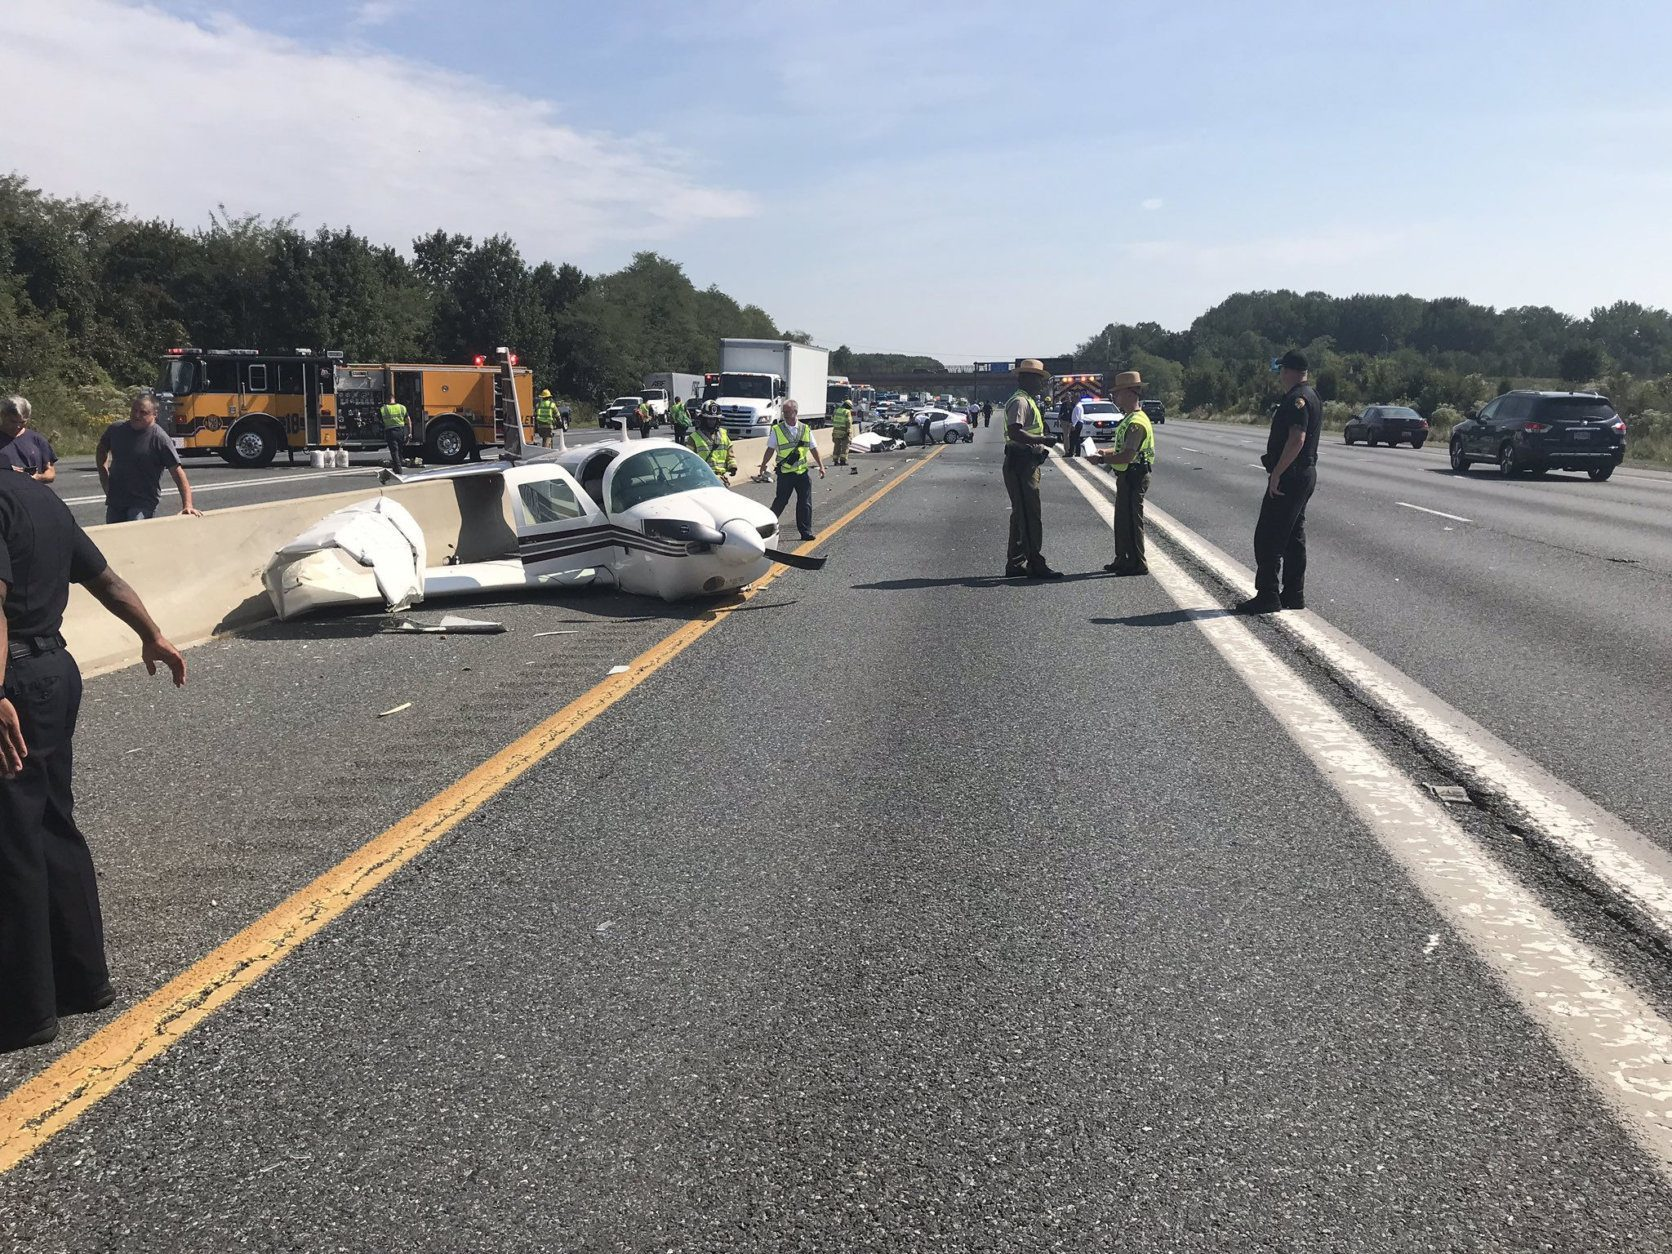 Authorities say it appears the plane was trying to land at a nearby airport when it crashed into a highway car.